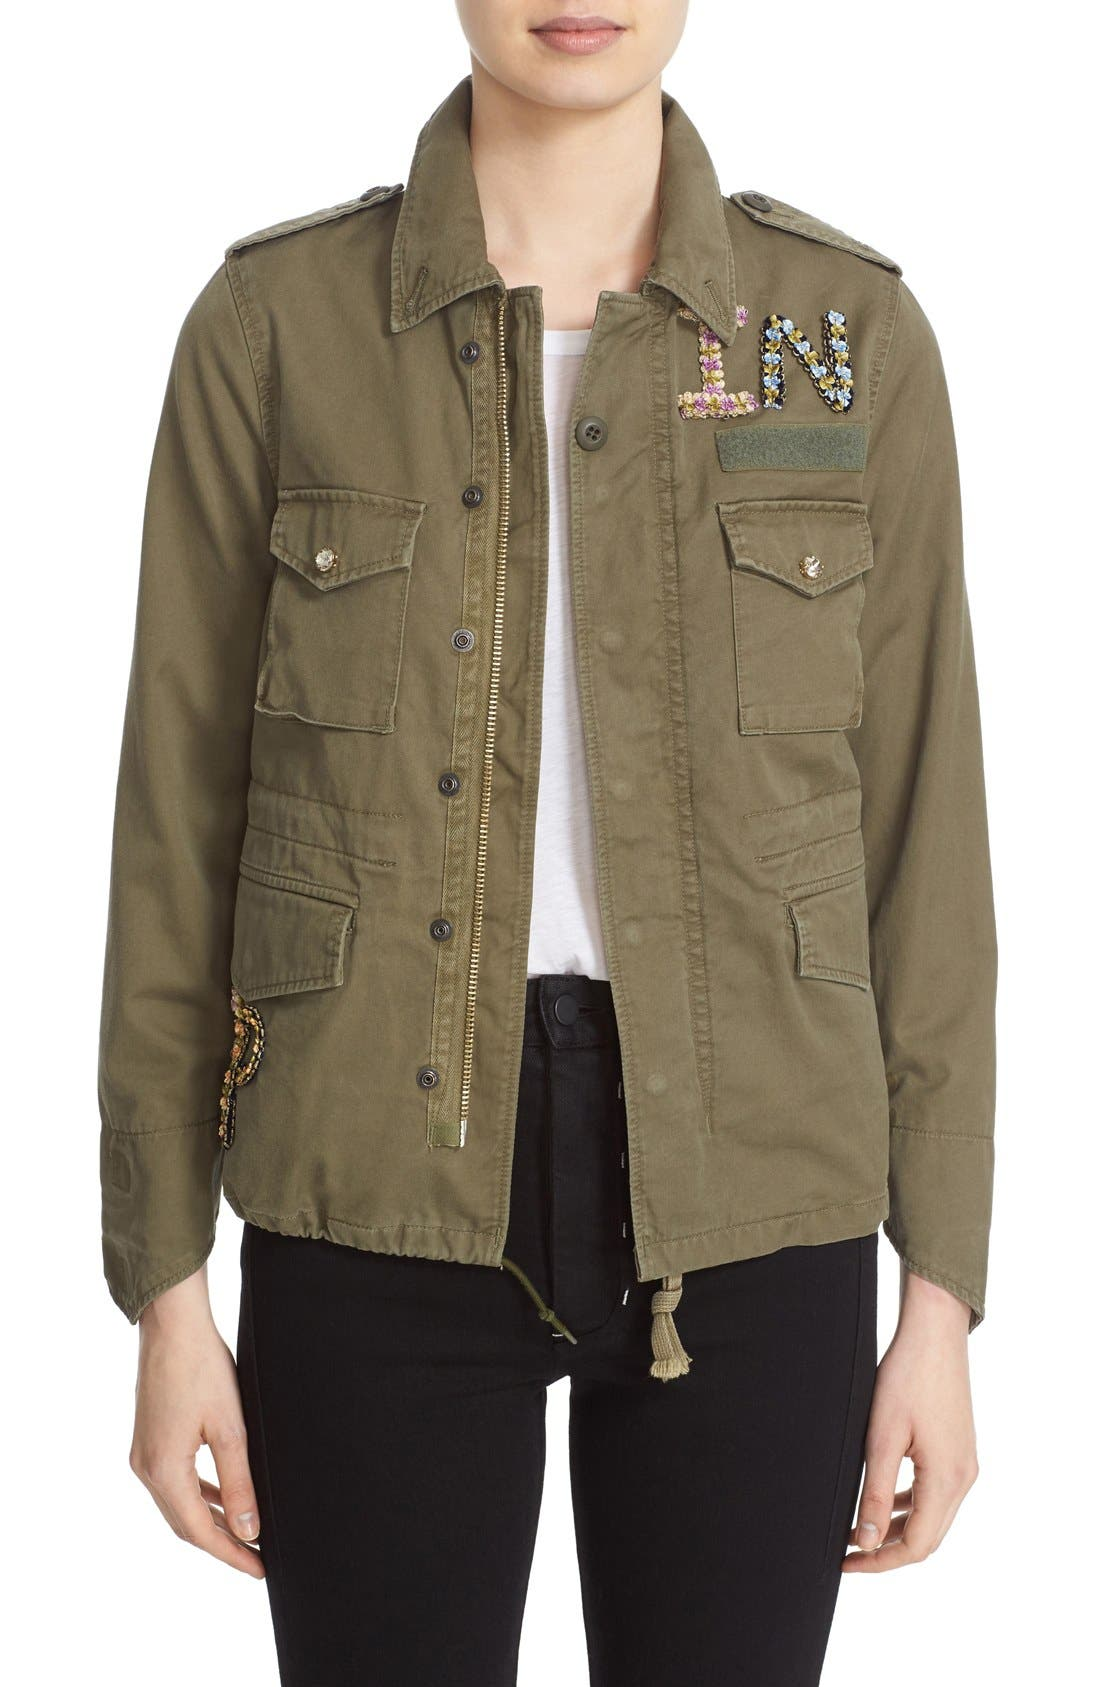 'The End' Embellished Military Jacket,                             Main thumbnail 1, color,                             250